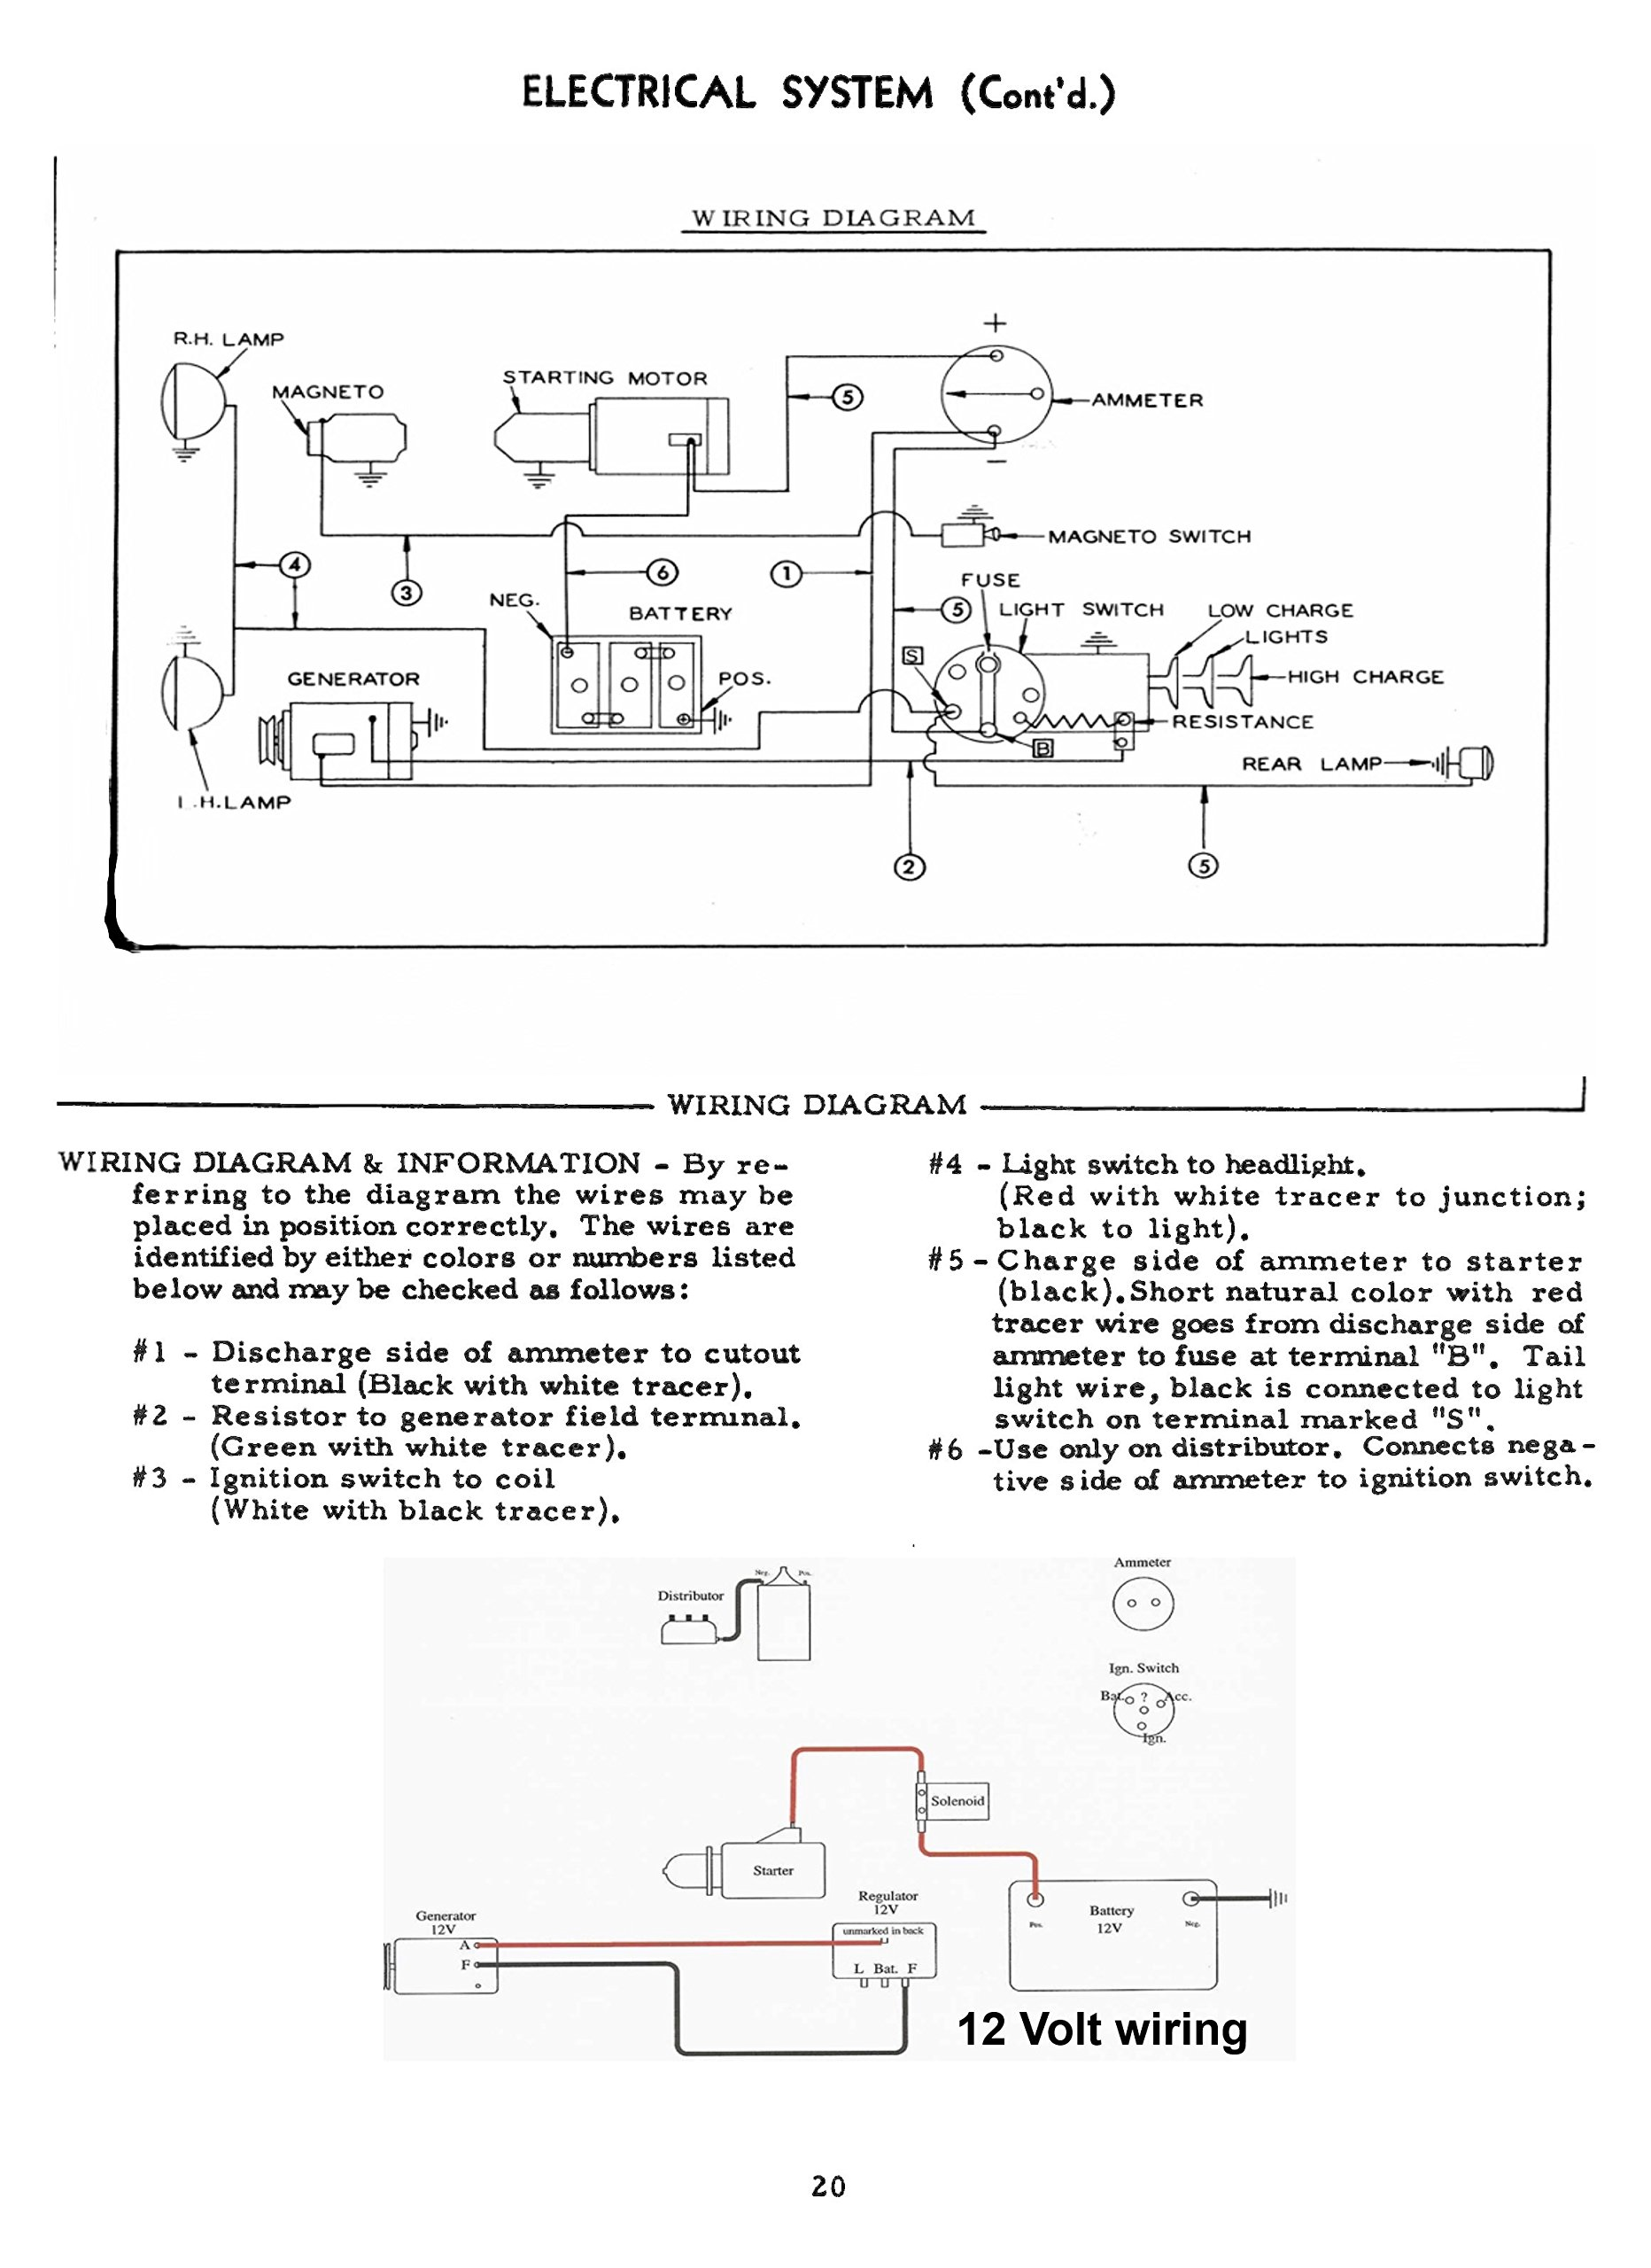 Allis Chalmers Wd 12 Volt Wiring Diagram | Wiring Liry on